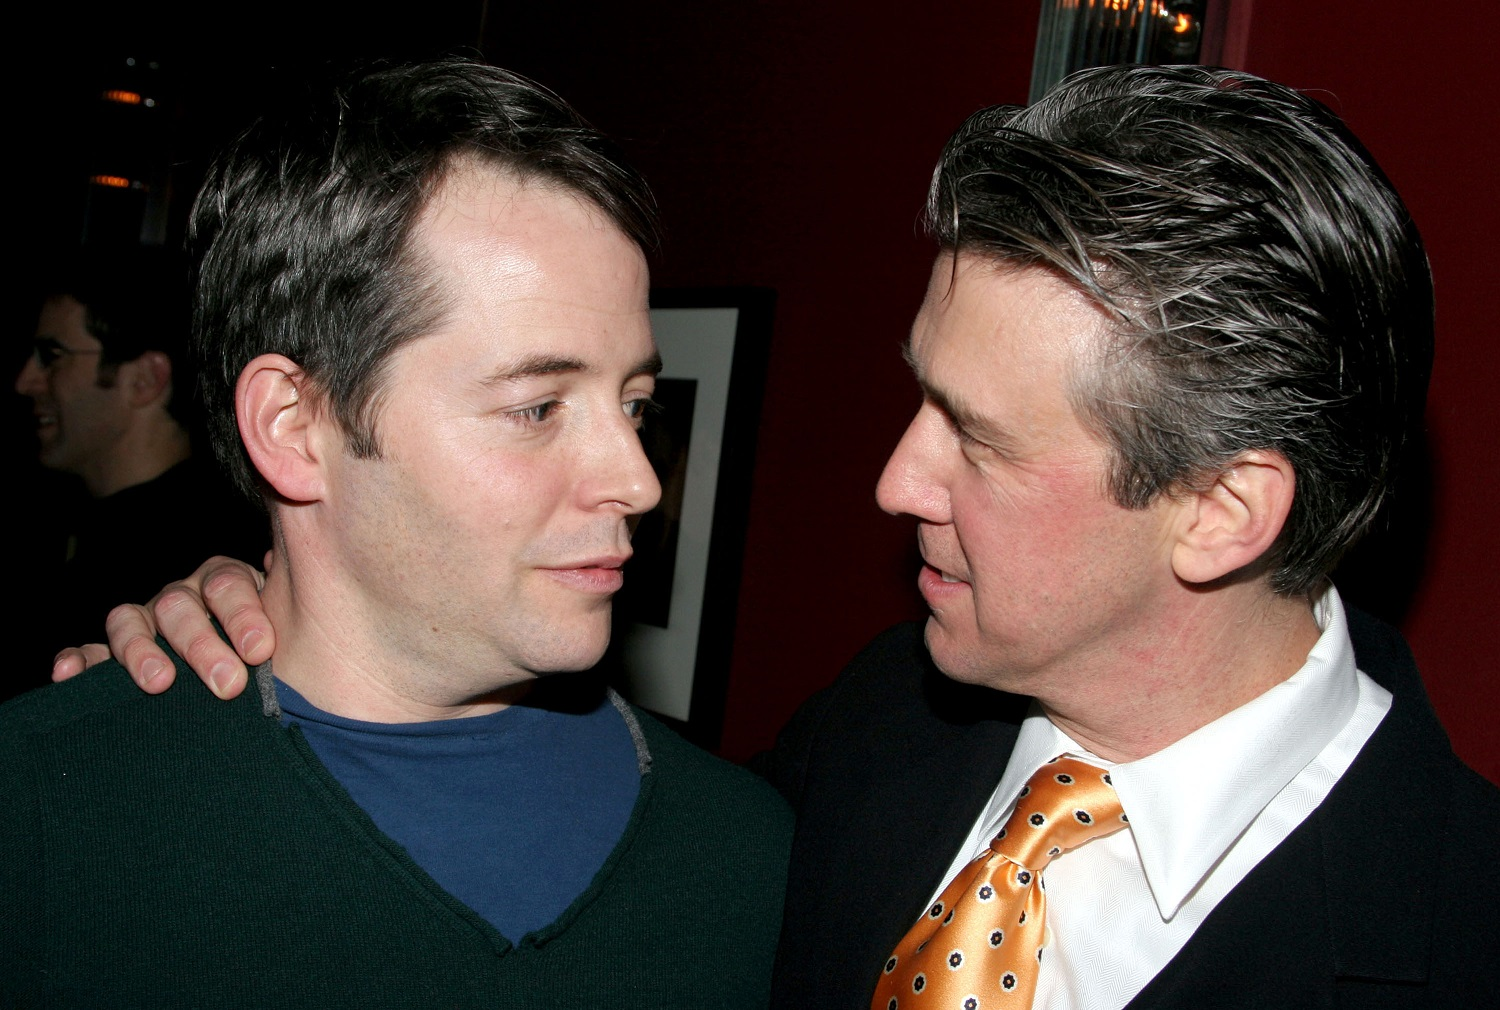 Matthew Broderick and Alan Ruck, who starred in Ferris Bueller's Day Off